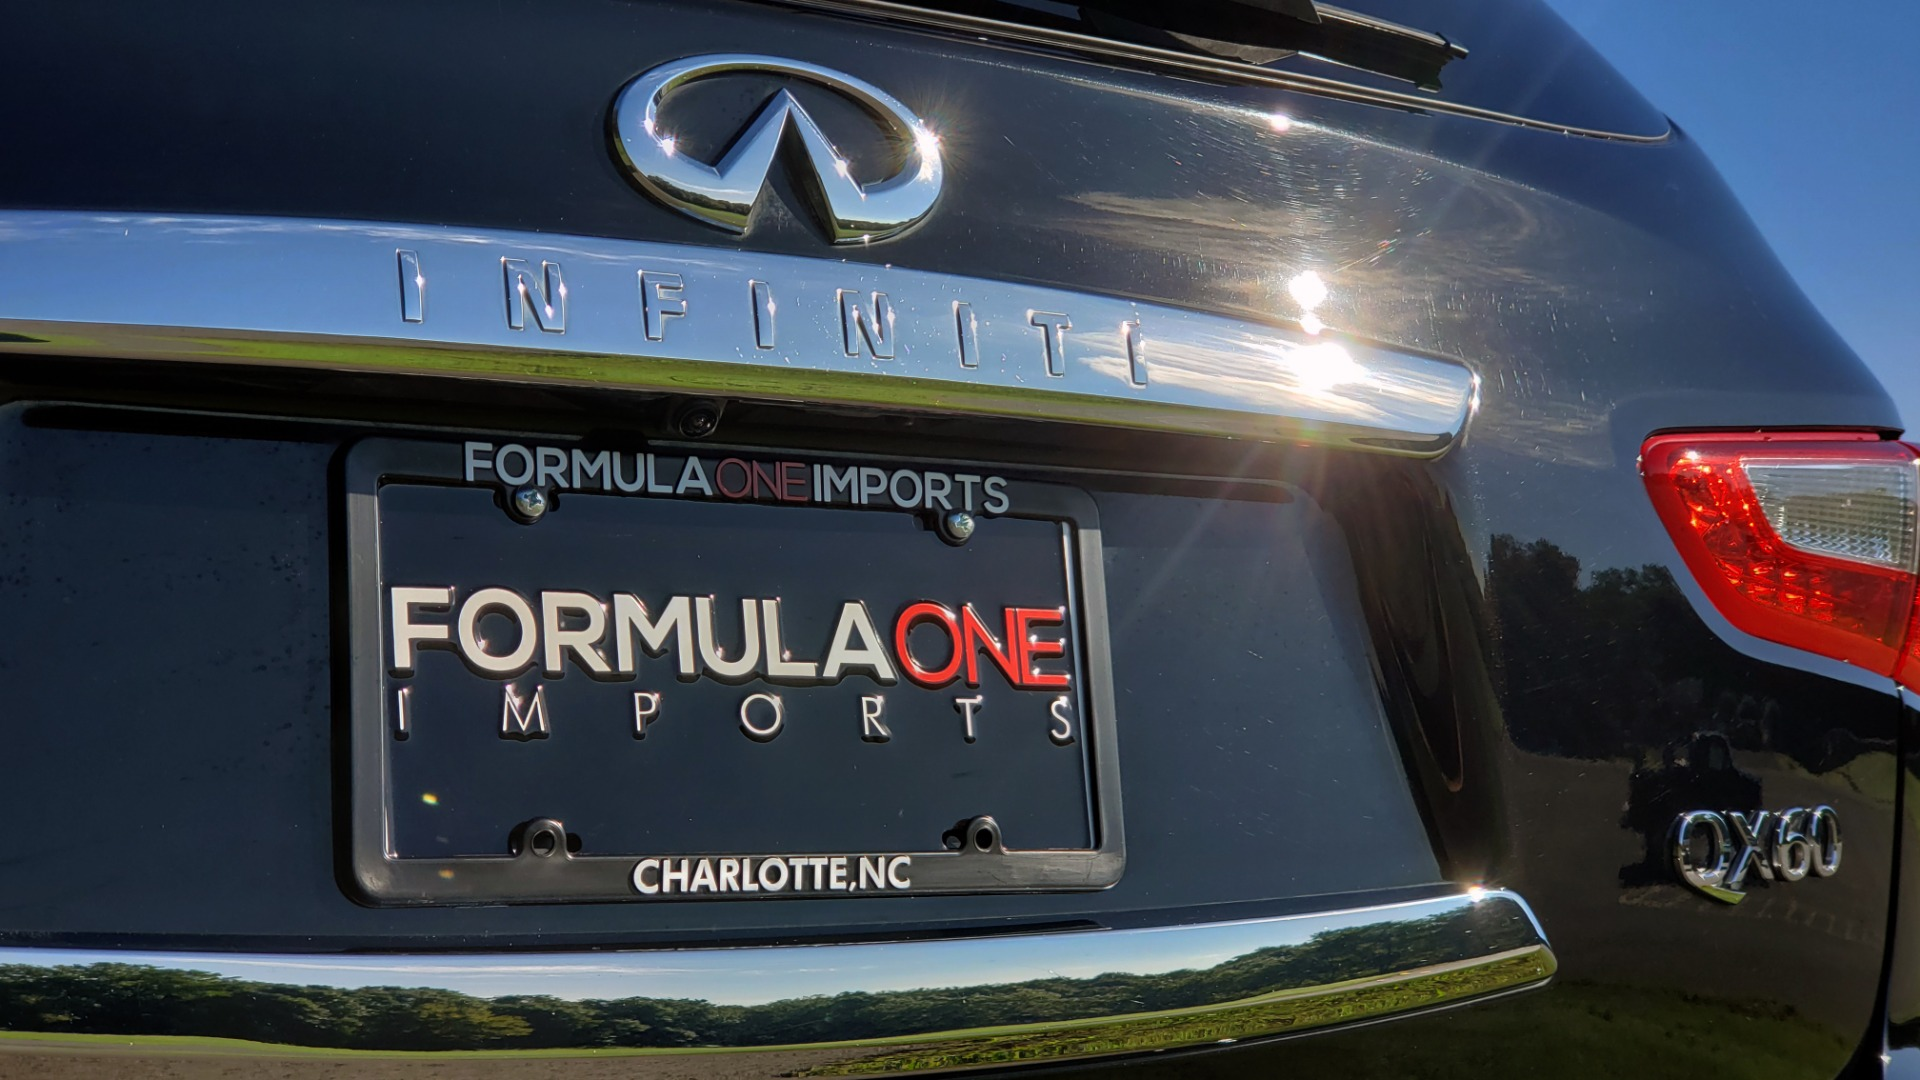 Used 2015 INFINITI QX60 AWD / PREM PLUS PKG / NAV / SUNROOF / BOSE / 3-ROW / REARVIEW for sale $19,695 at Formula Imports in Charlotte NC 28227 21